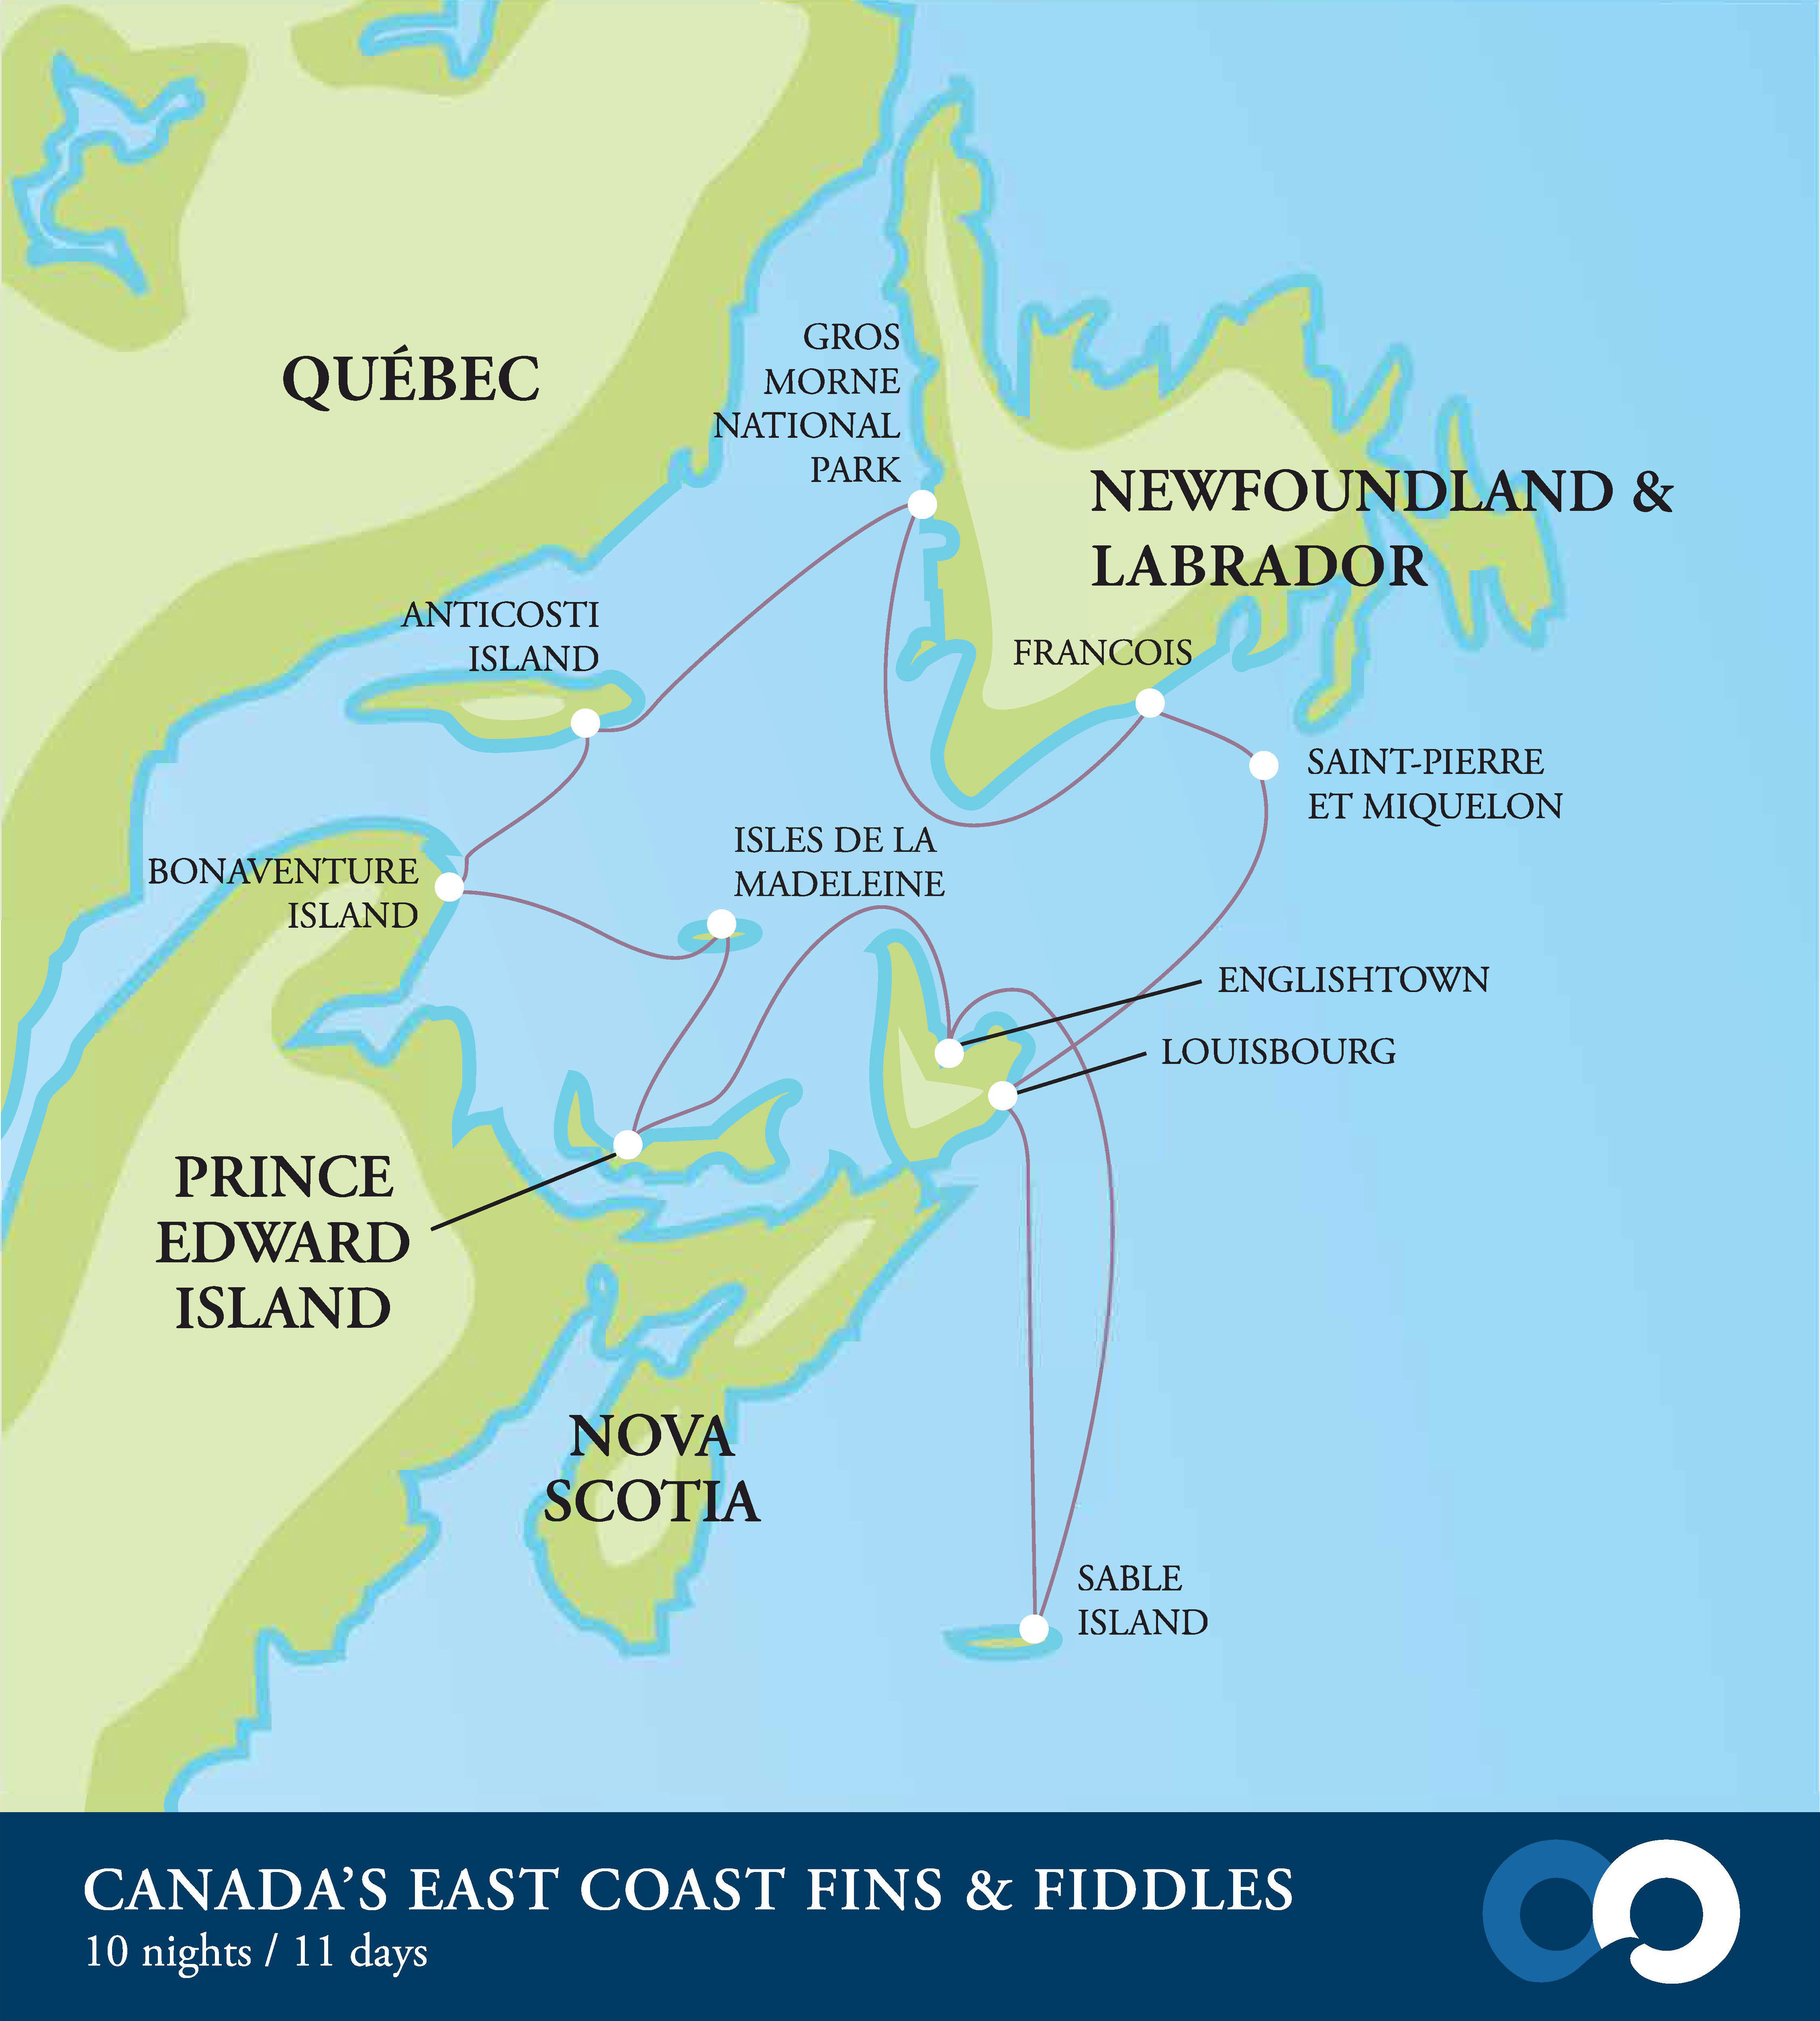 Canadian Maritimes  Fins and Fiddles  Wild Earth Travel